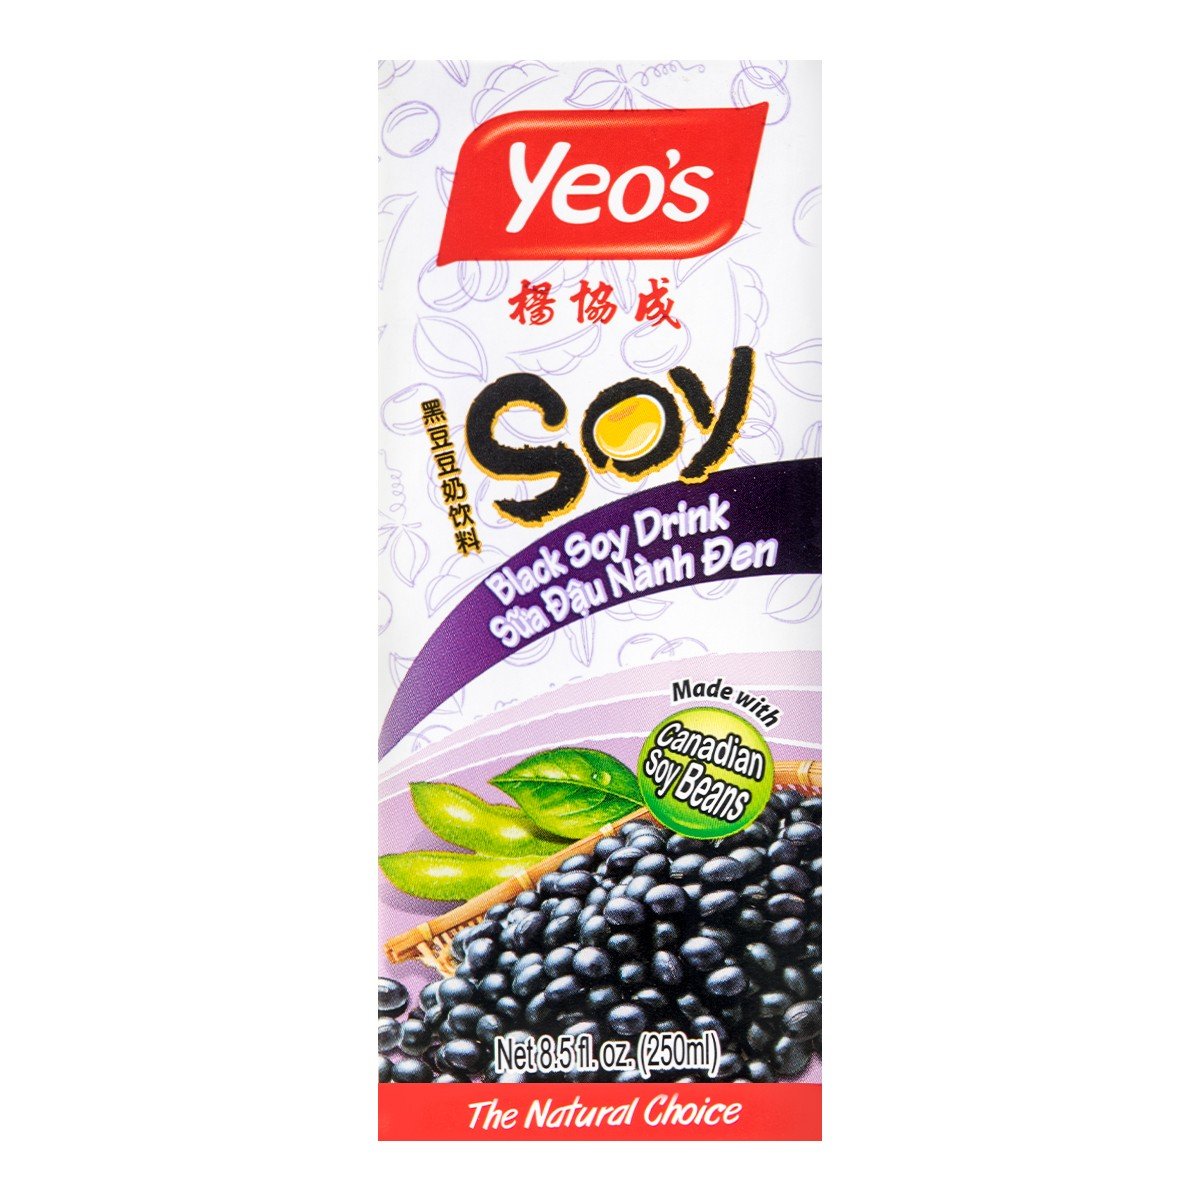 Yeo's Black Soy Drink Made With Canadian Soy Beans 250ml